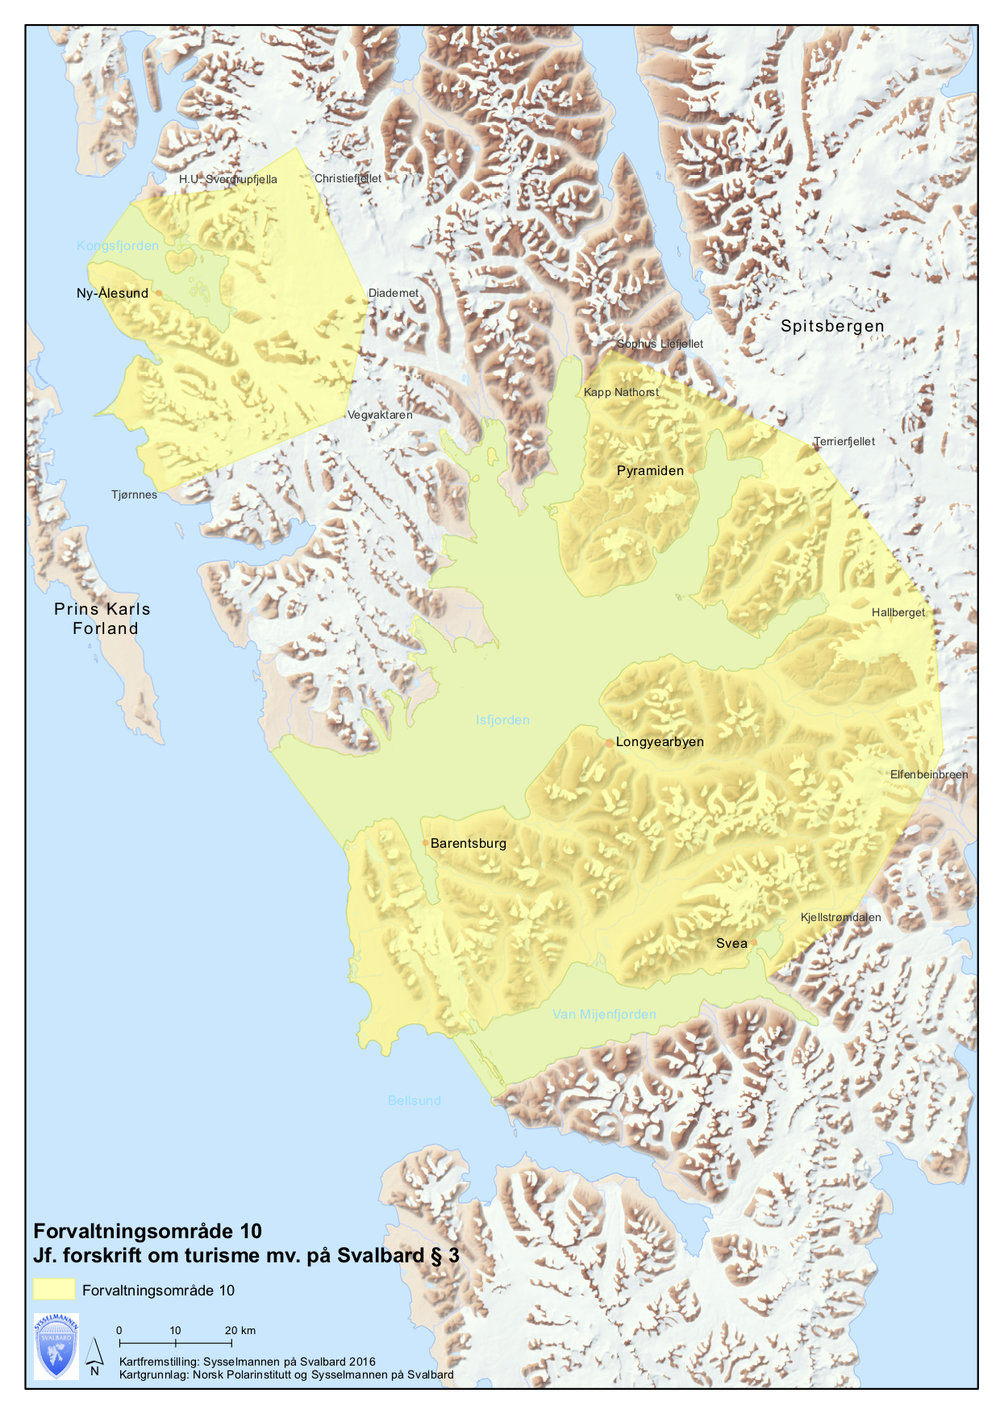 A map over area 10. Map by: The Governor of Svalbard with data from The Norwegian Polar Institute.